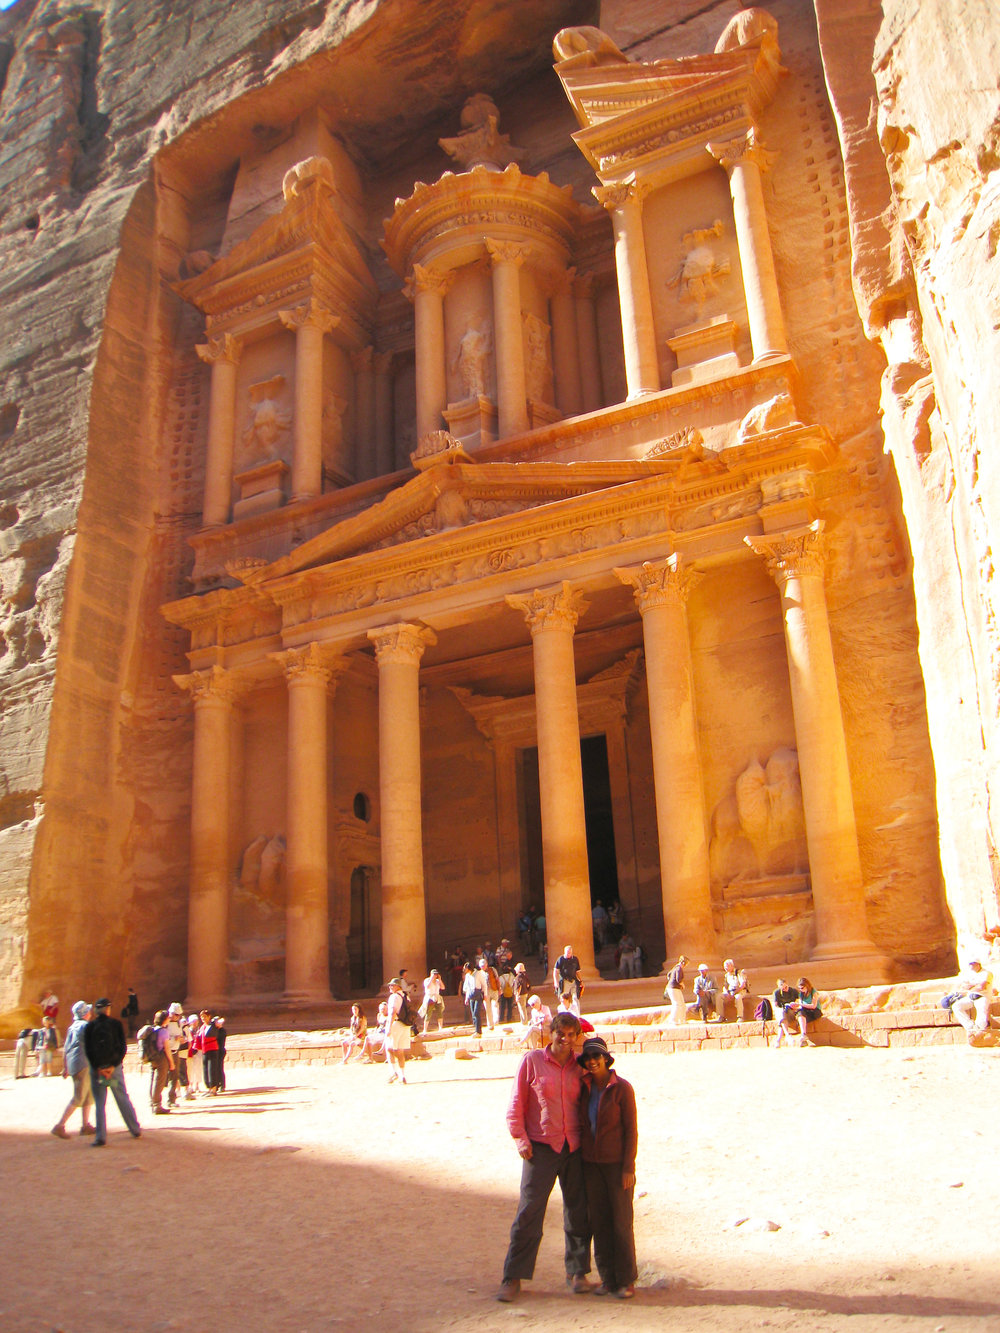 Exploring the pink sandstone temples of Petra, Jordan.